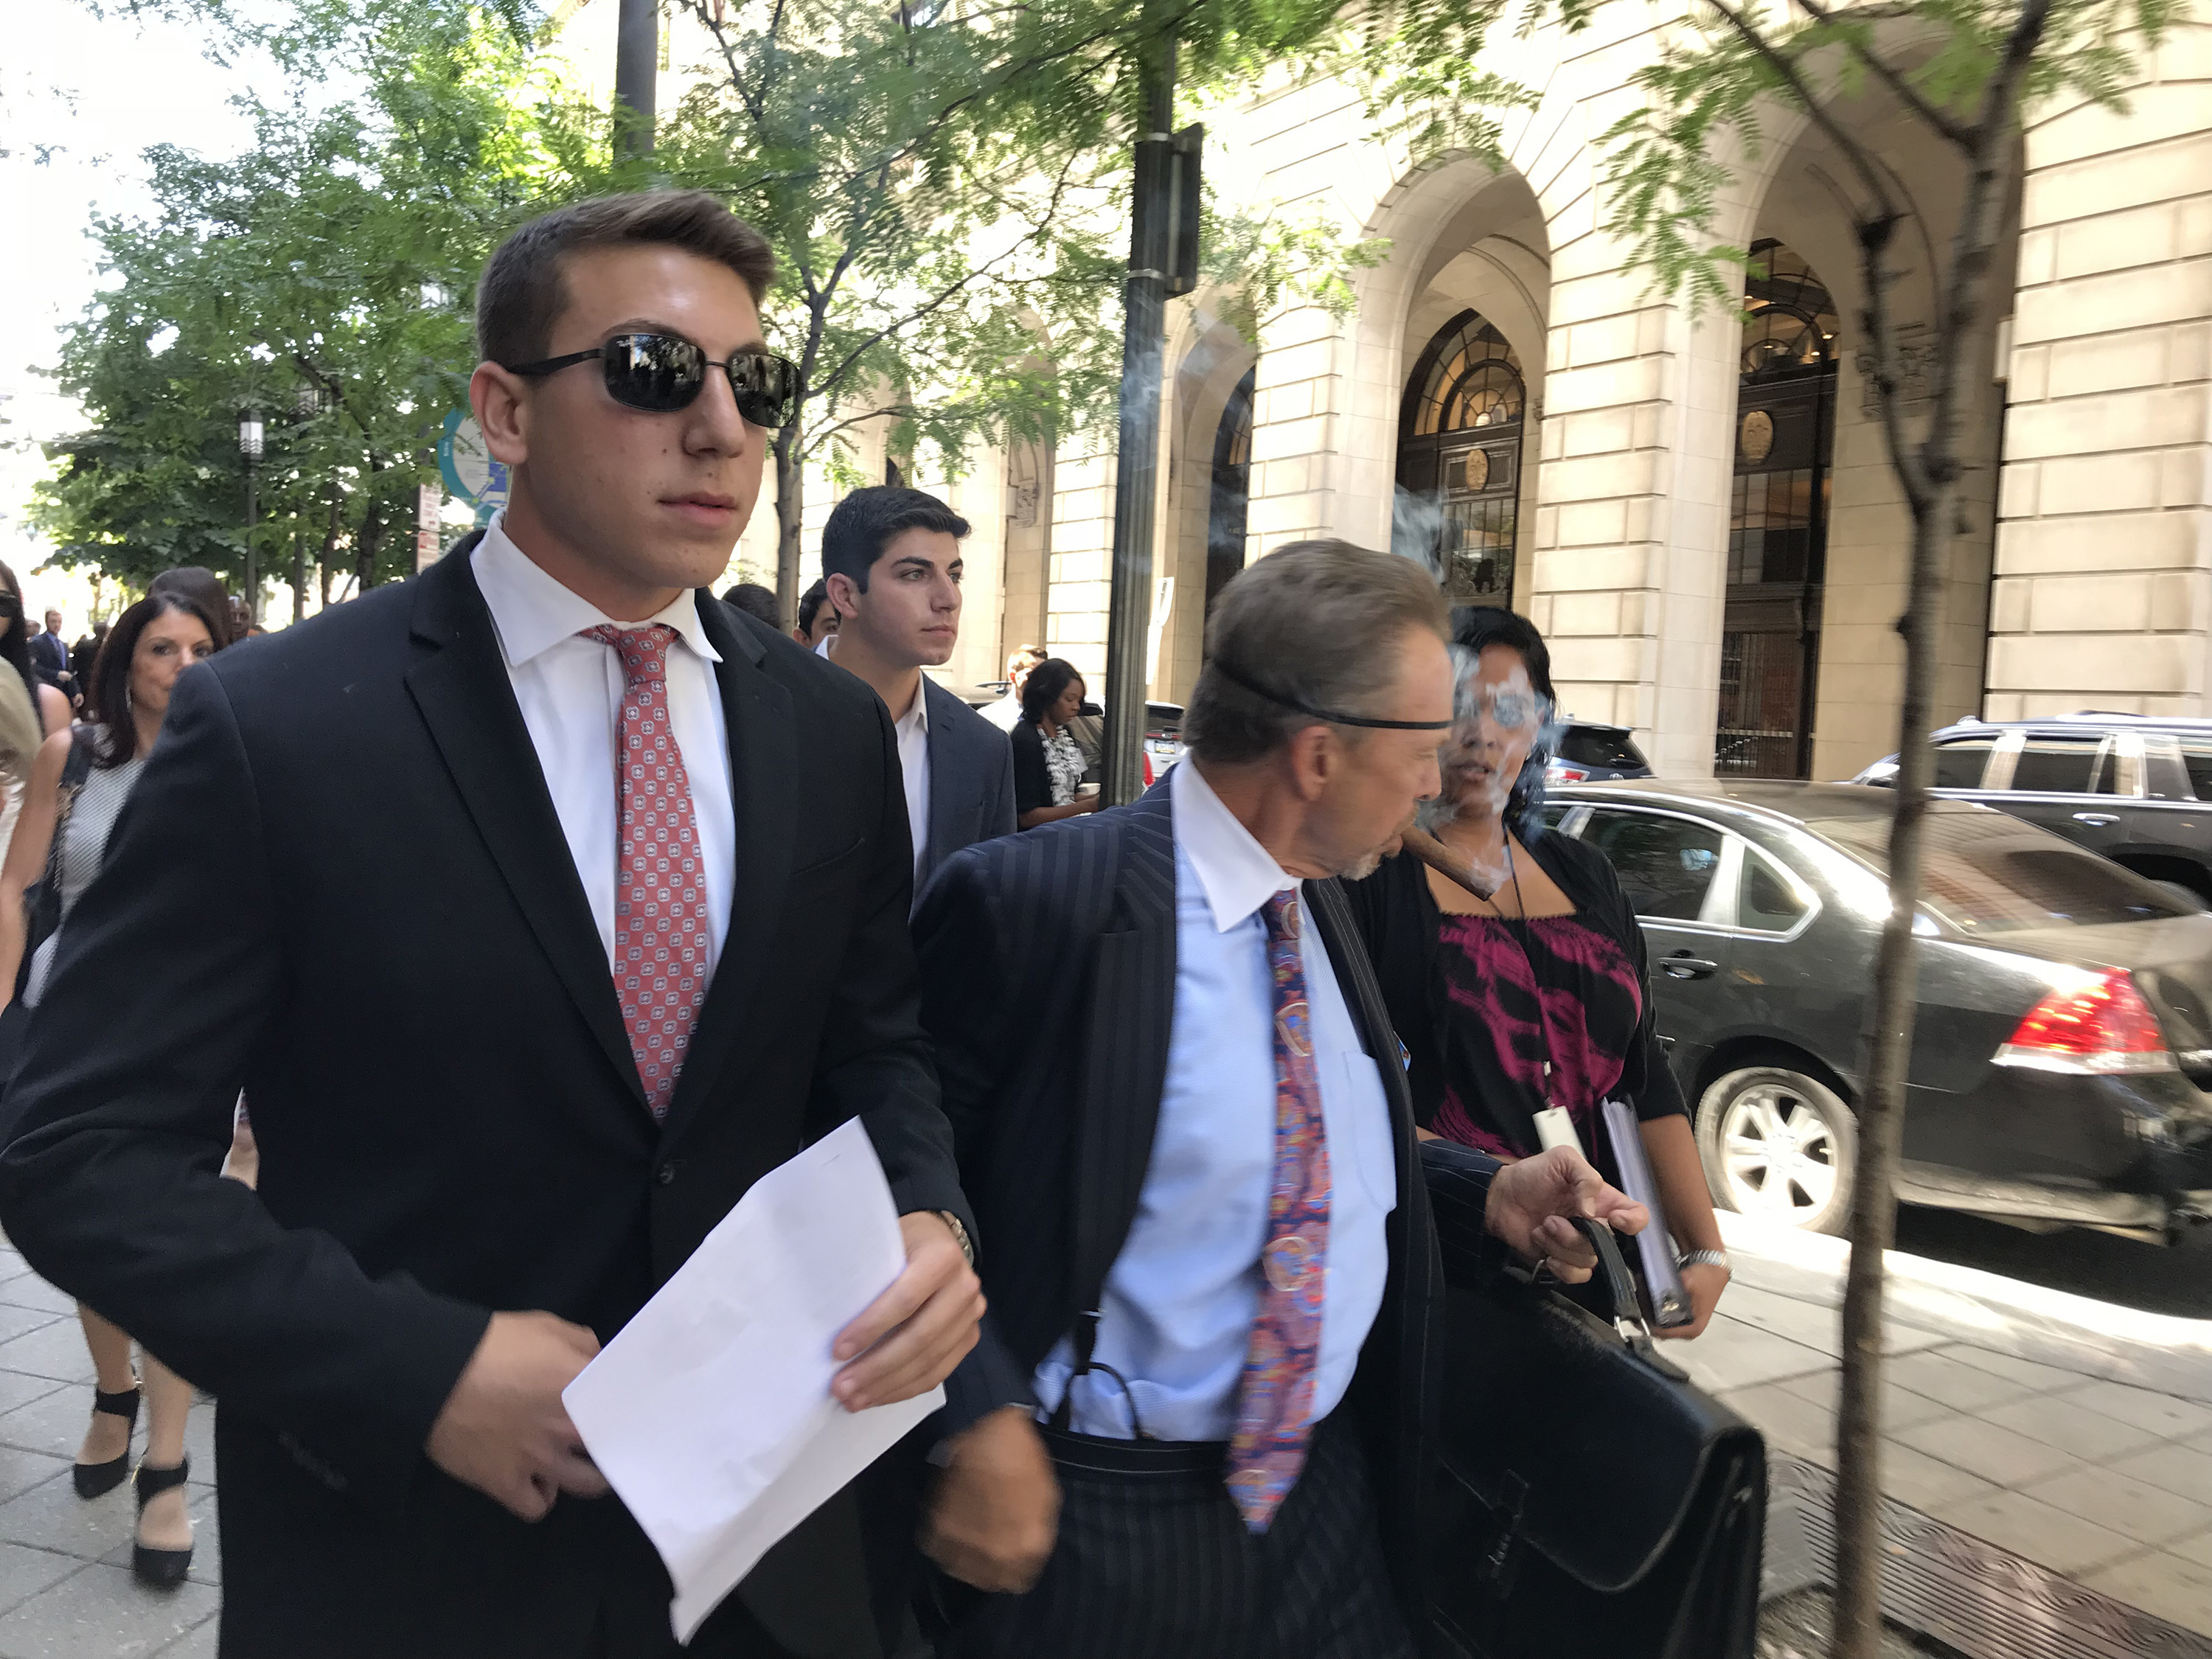 Ari Goldstein, left, former president of Temple University´s Alpha Epsilon Pi fraternity, leaves the Criminal Justice Center after a preliminary hearing on July 19, 2018.